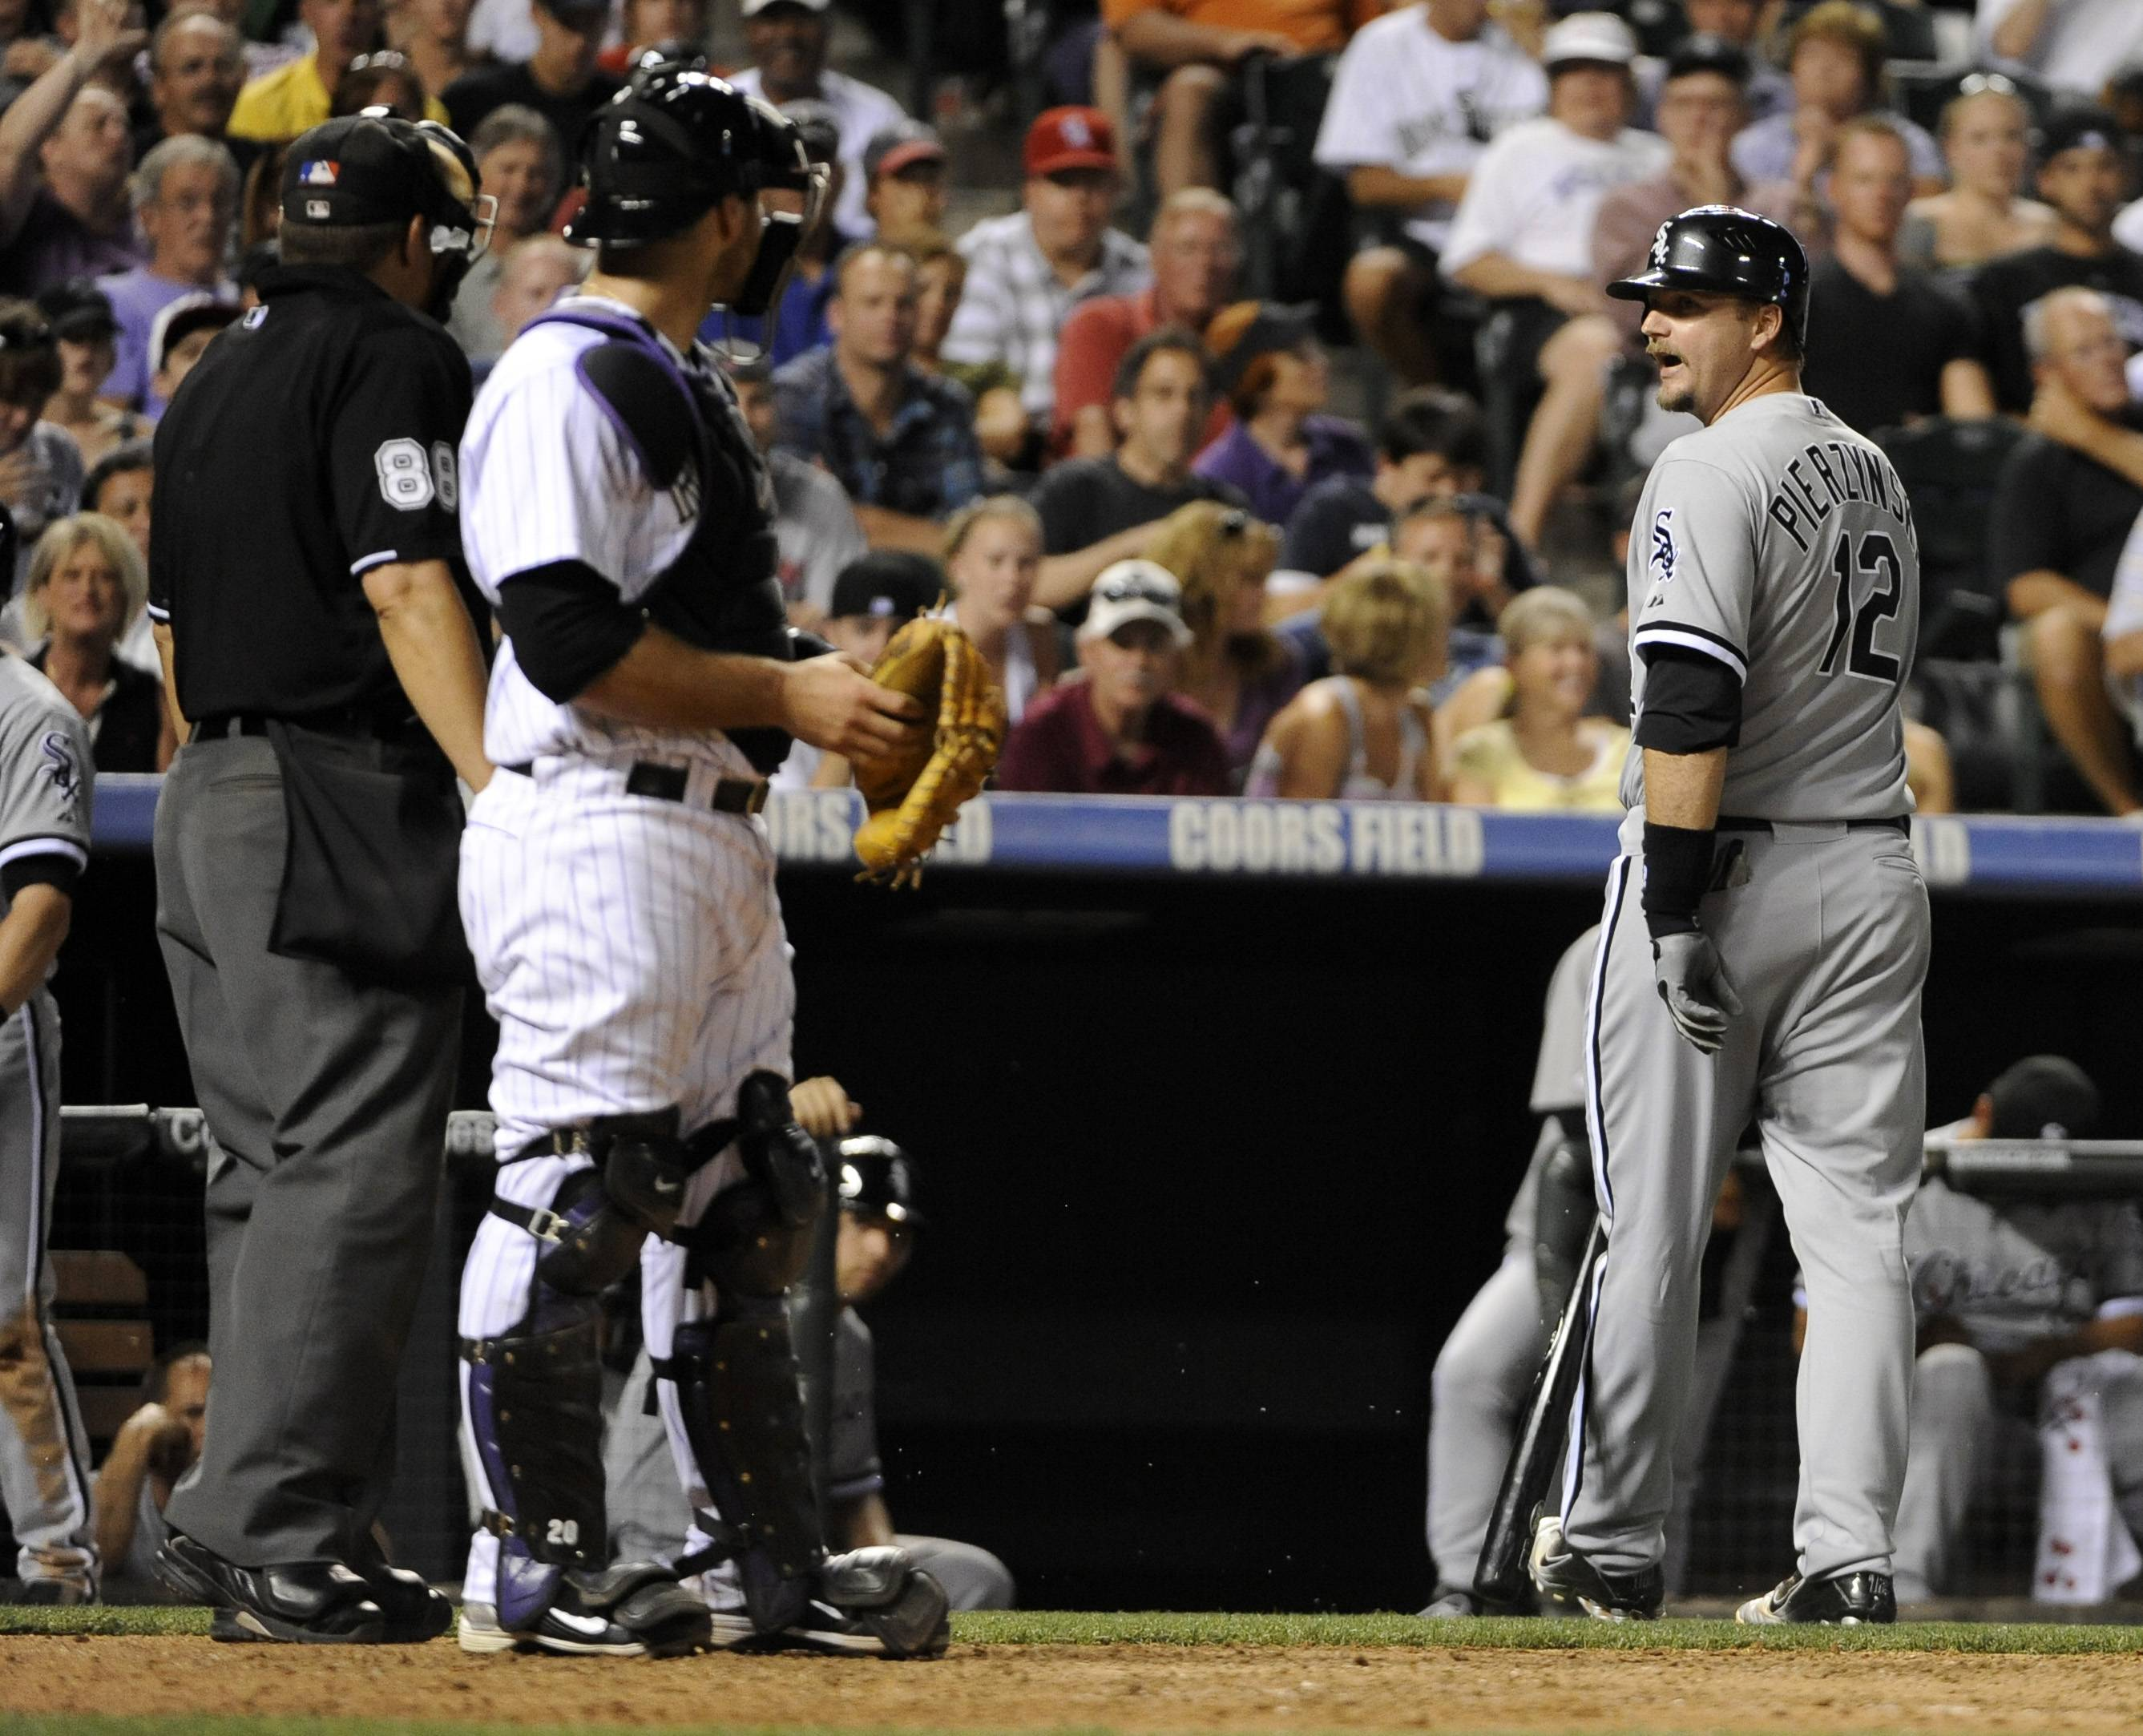 A.J. Pierzynski argues with home plate umpire Doug Eddings as Colorado Rockies catcher Chris Iannetta looks on during the ninth inning Tuesday night at Coors Field.